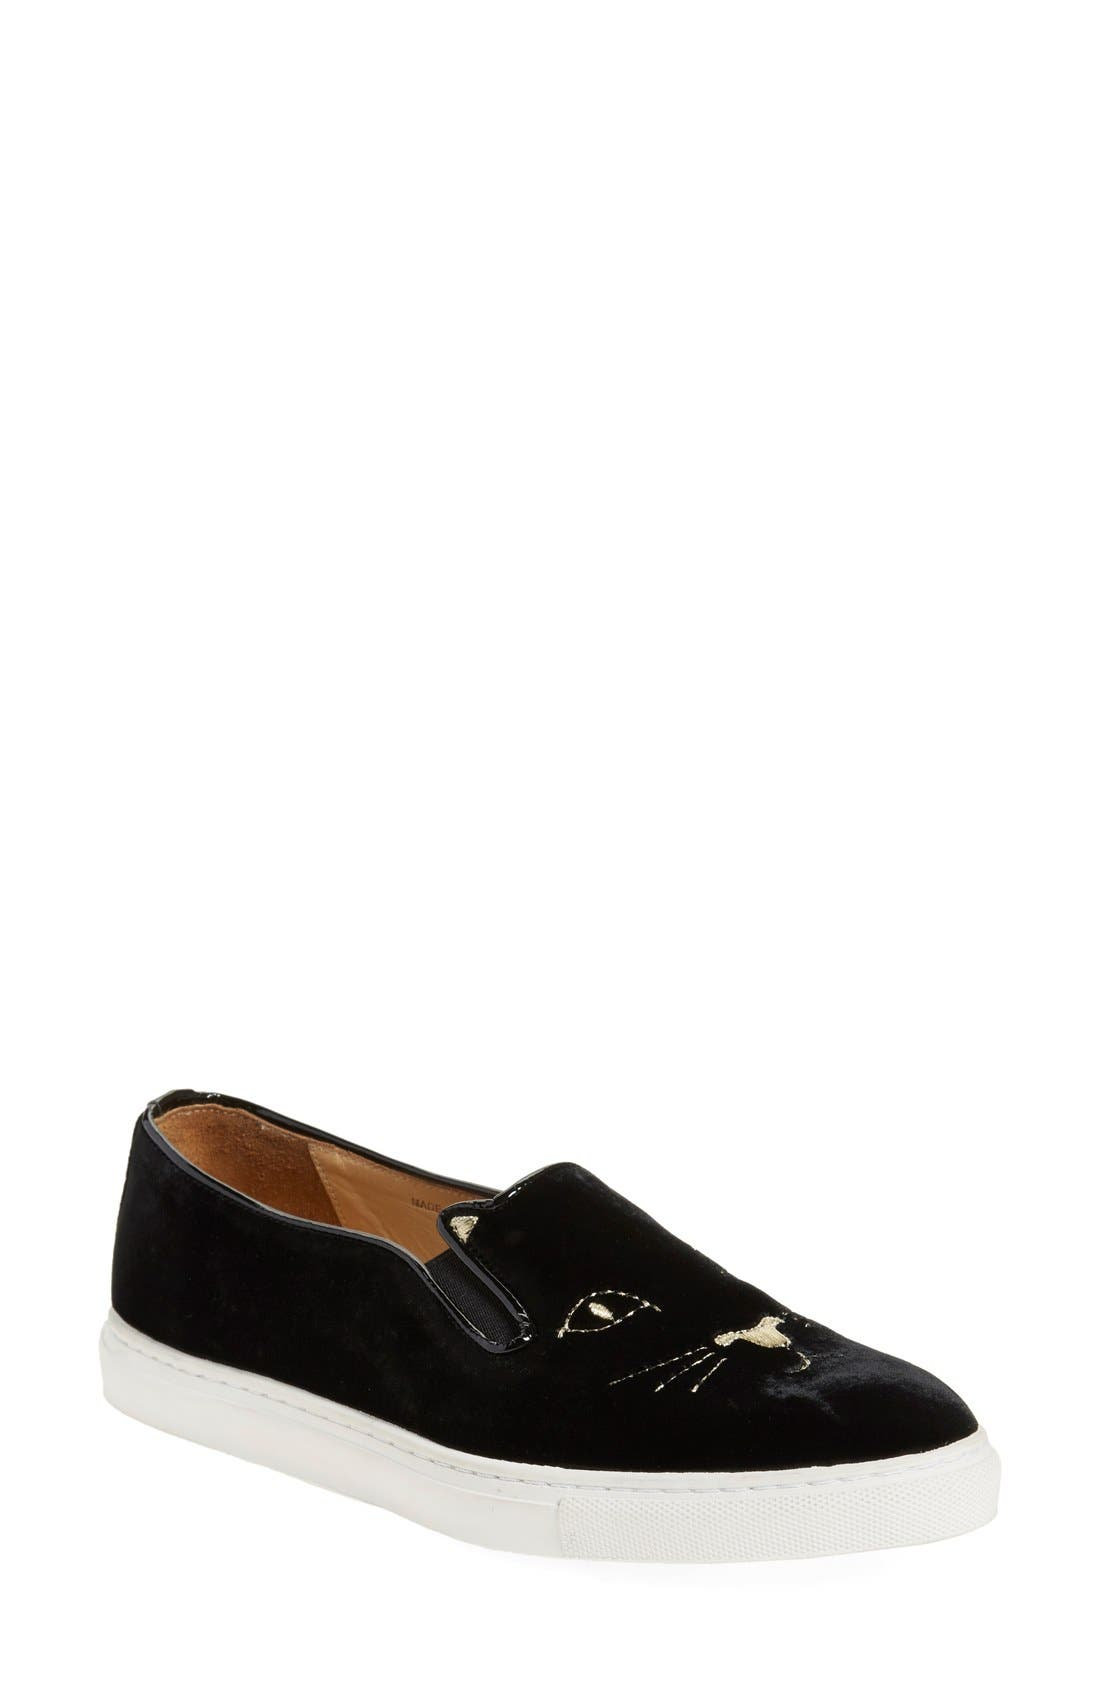 Alternate Image 1 Selected - Charlotte Olympia Cool Cats Slip-On Sneaker (Women)